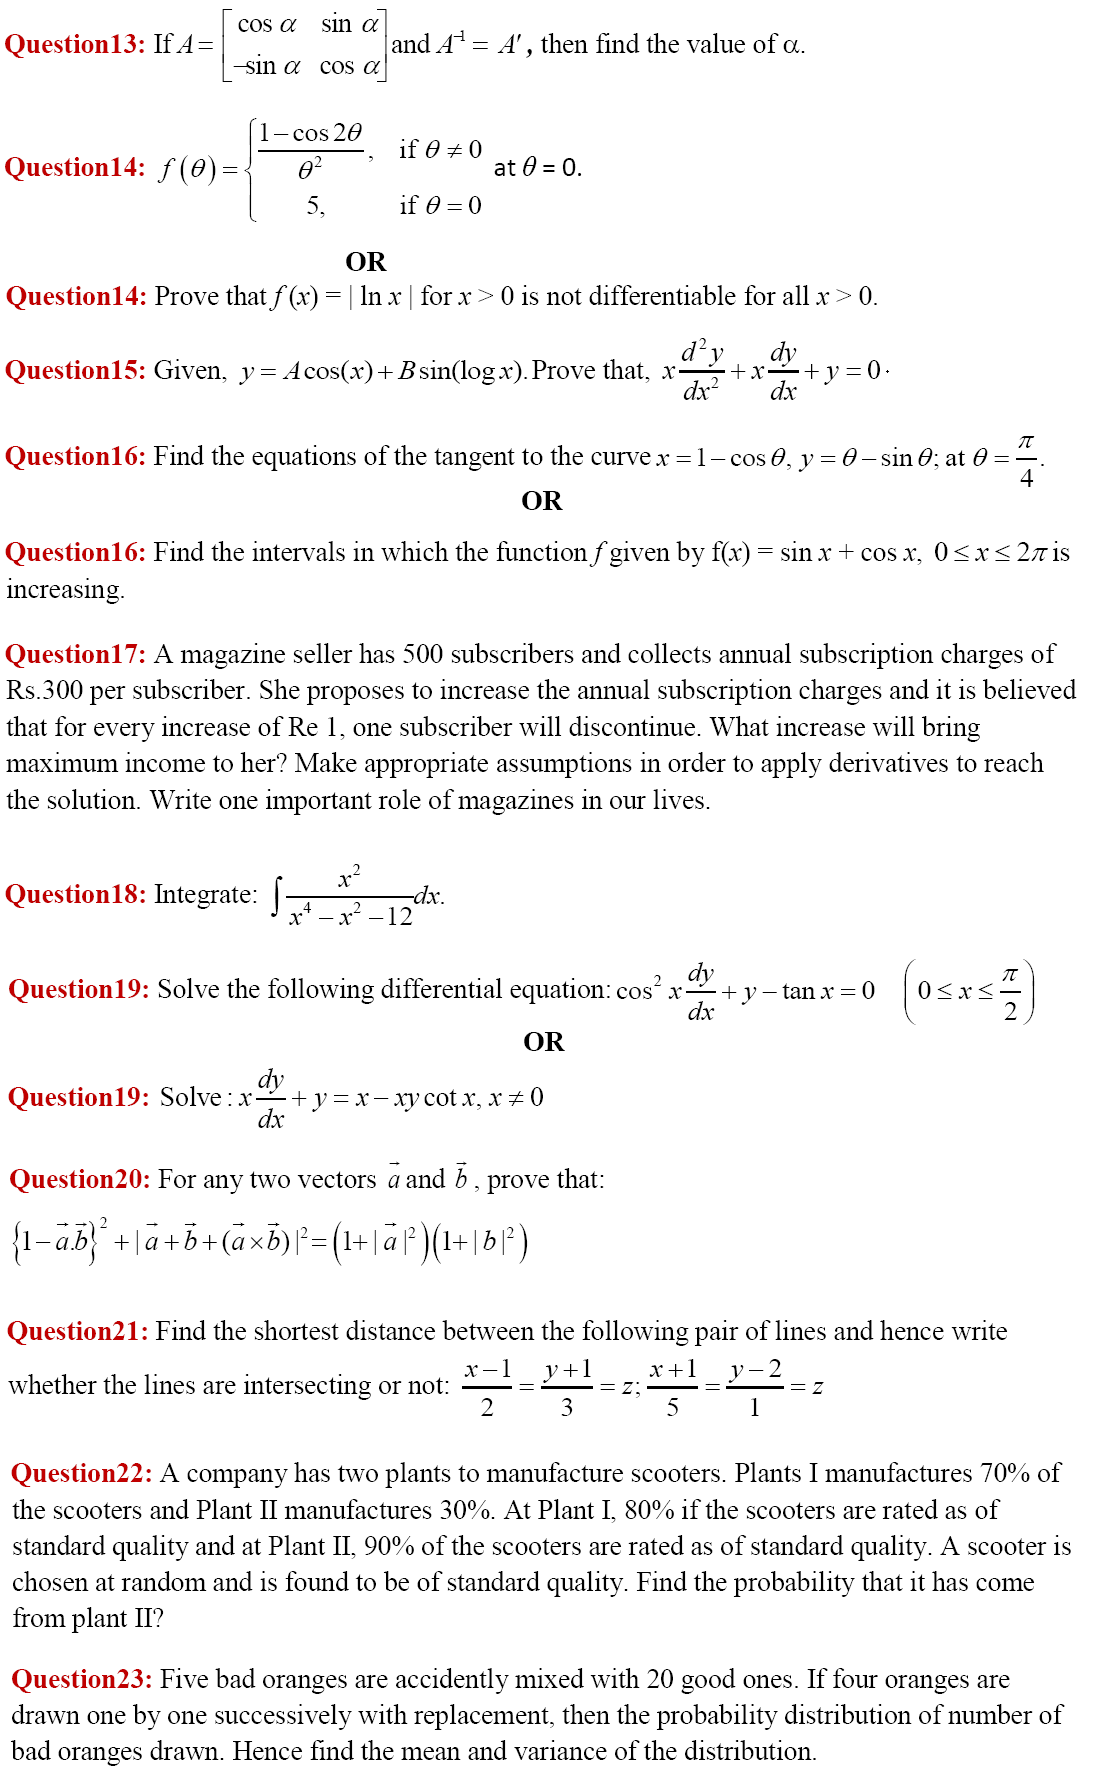 11 questions of 4 marks each, section c, CBSE Class 12 Maths Paper